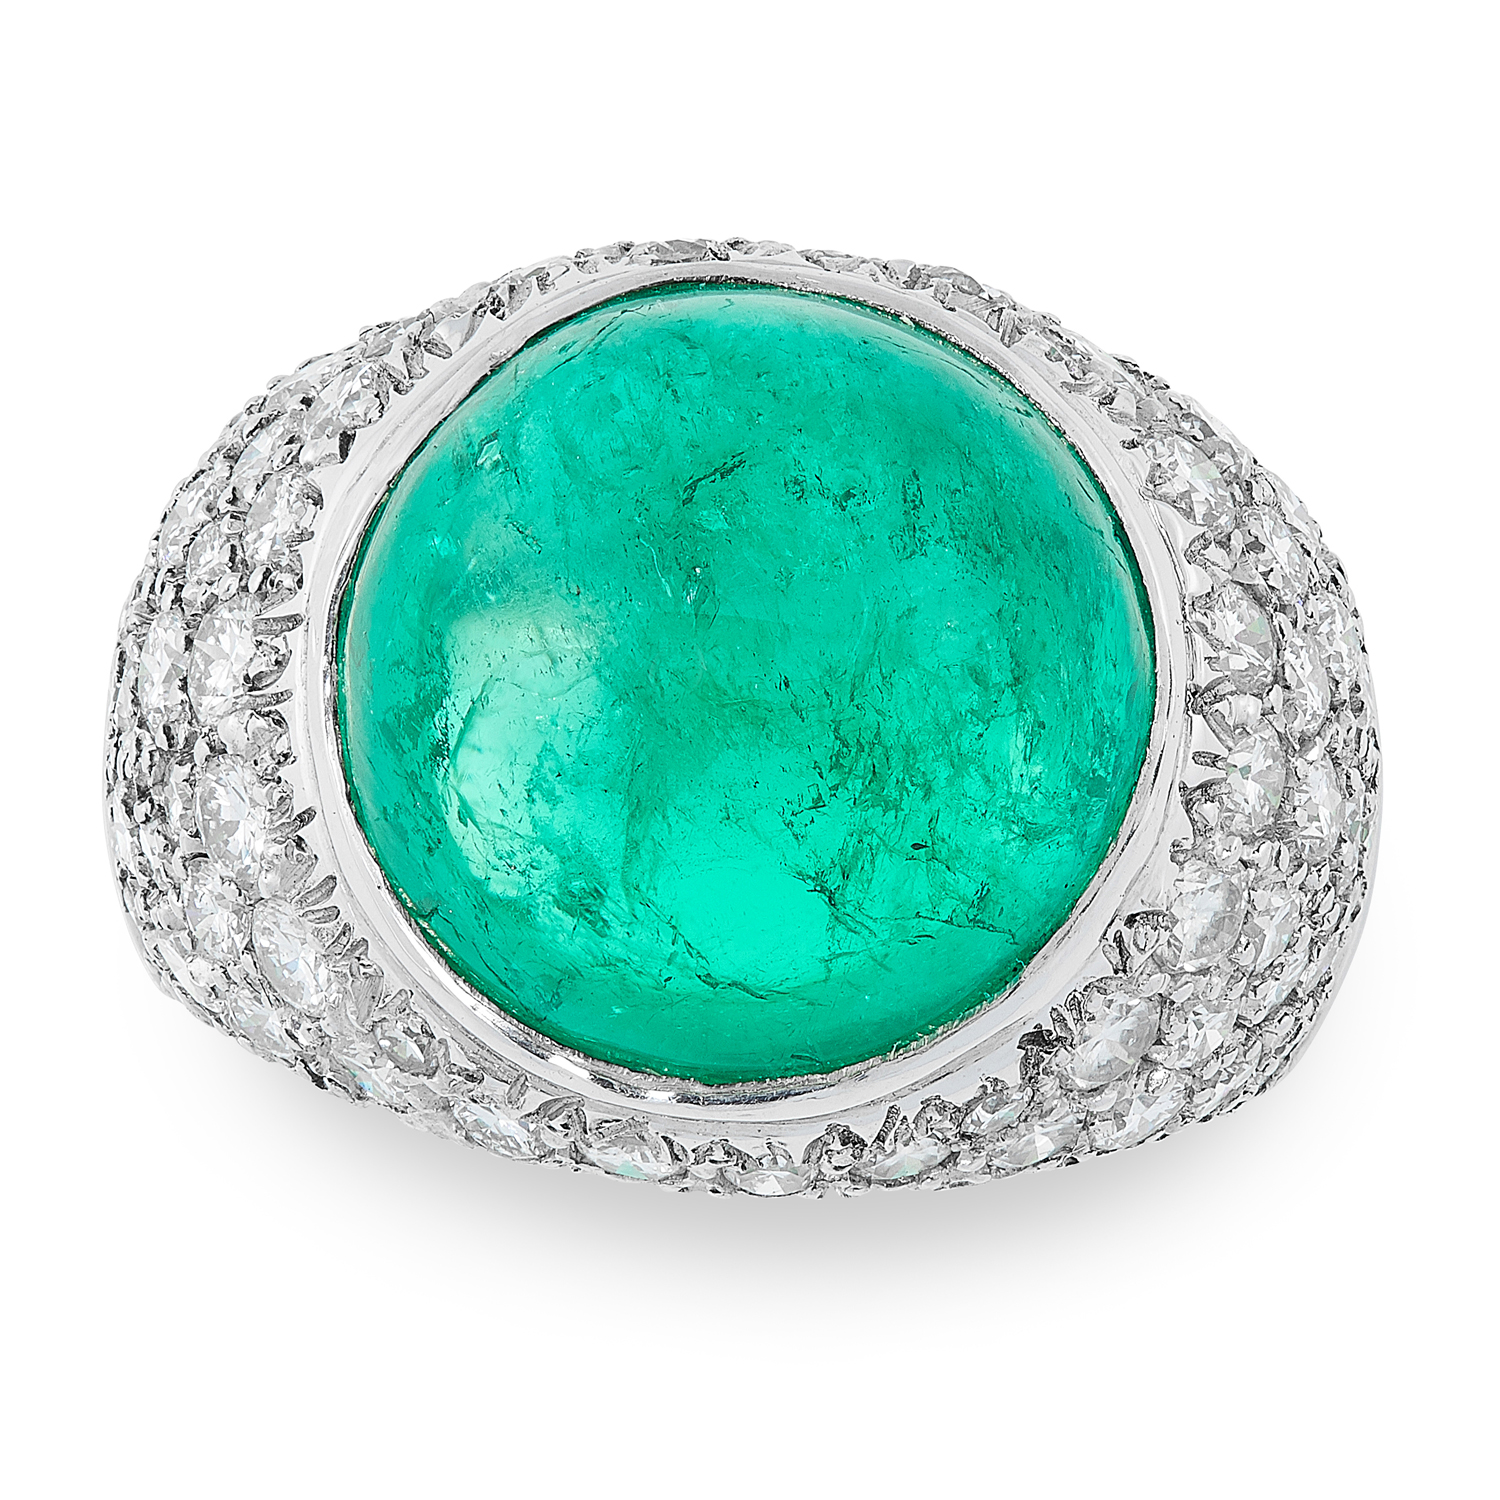 Lot 17 - A COLOMBIAN EMERALD AND DIAMOND RING CIRCA 1980 in platinum, set with a circular cabochon emerald of